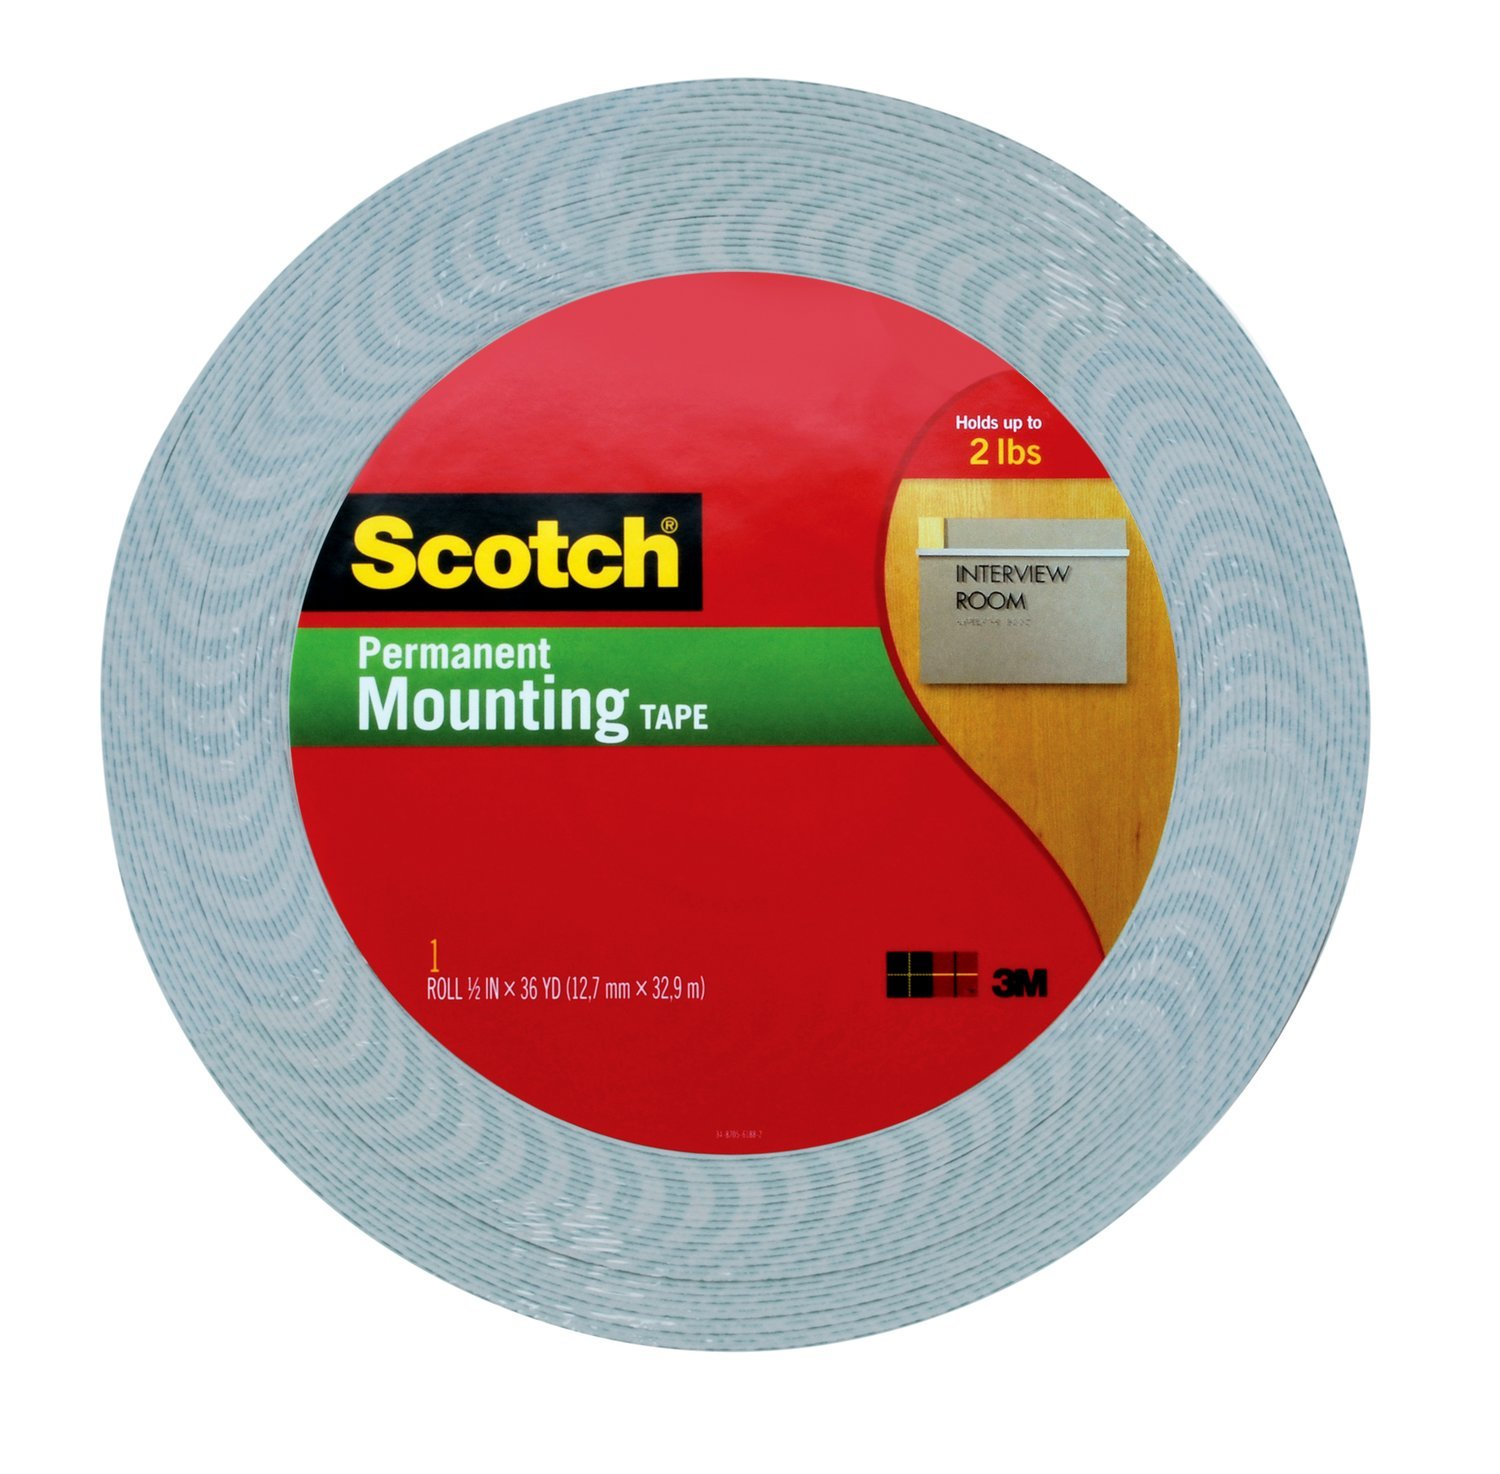 3M 885682830653 Scotch 1/2-Inch by 36-Yard Double-Sided Foam Tape (4016), x 36 Yards 1/16-inch, Off-White 3M Office Products